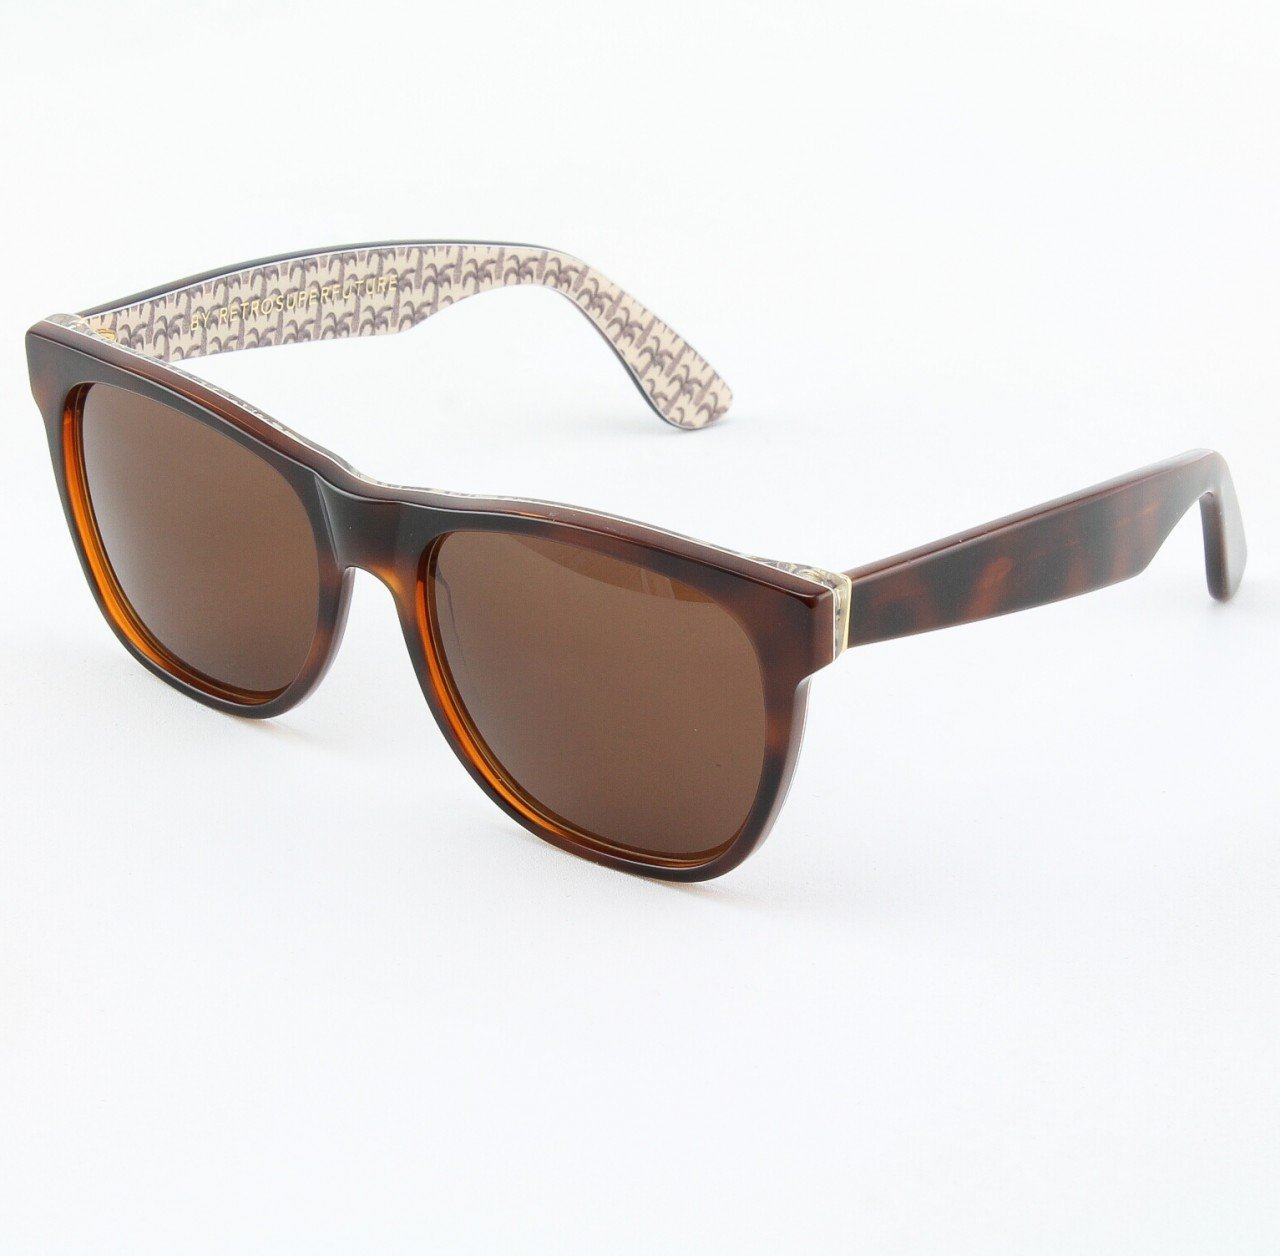 Super Classic 508/3T Sunglasses Brown with Brown Zeiss Lenses by RETROSUPERFUTURE